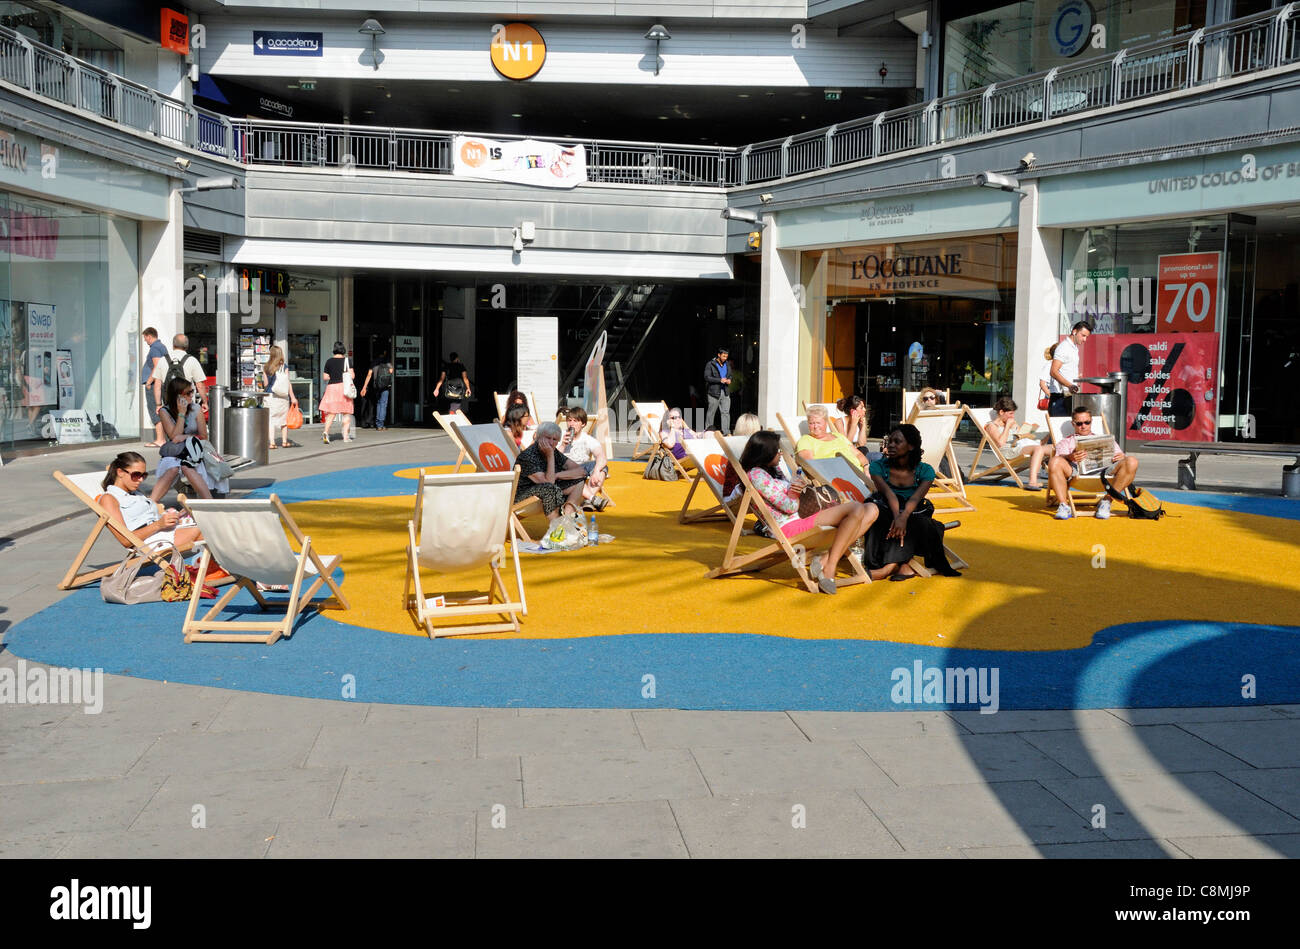 People relaxing in deckchairs on imitation sand at the N1 Centre, Angel Islington London England UK - Stock Image